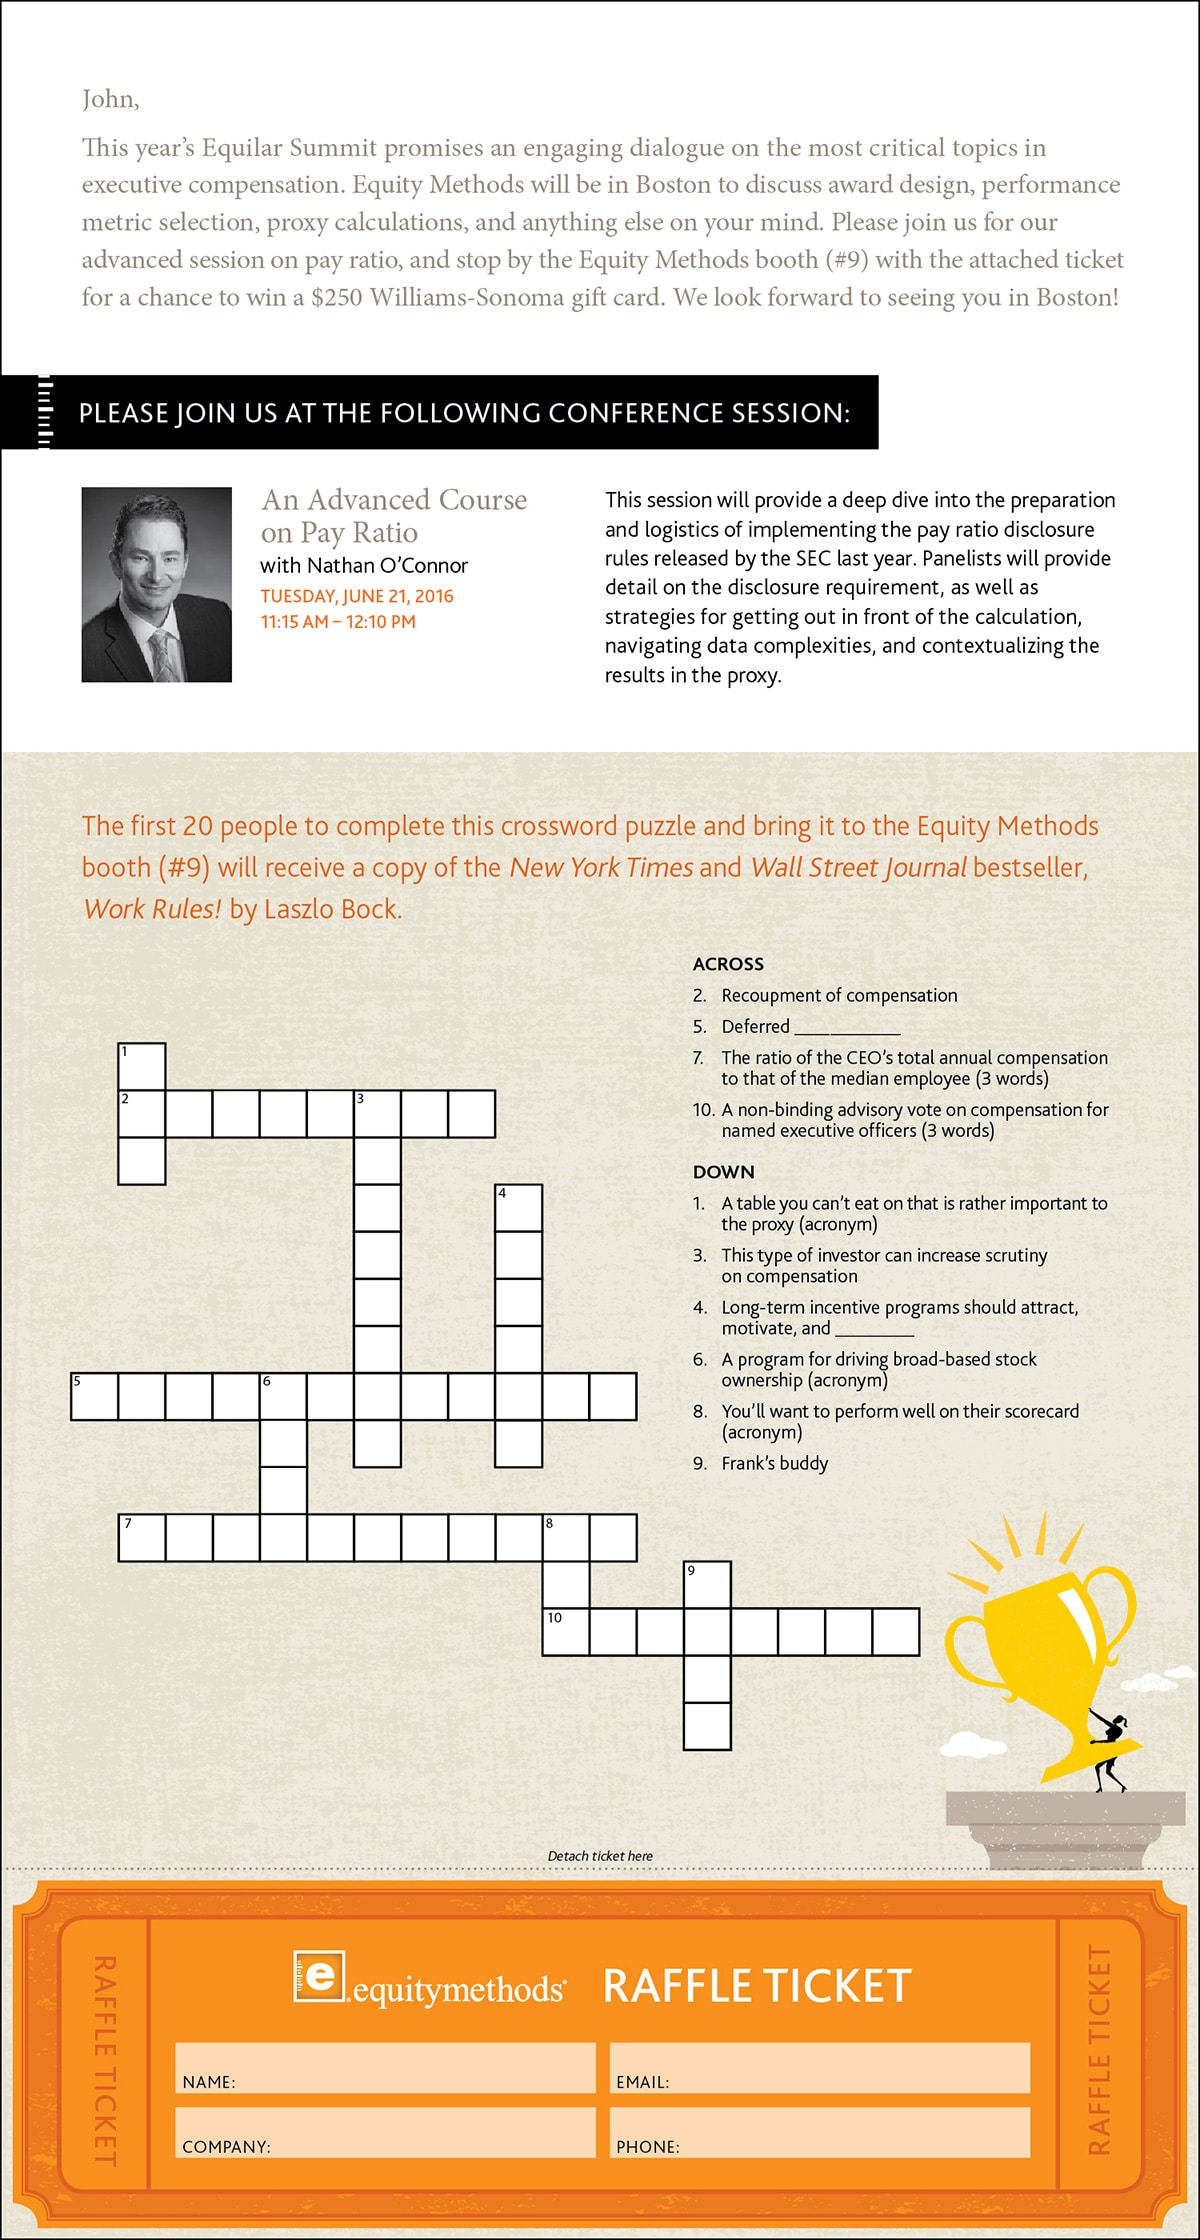 equity methods crossword mailer 2